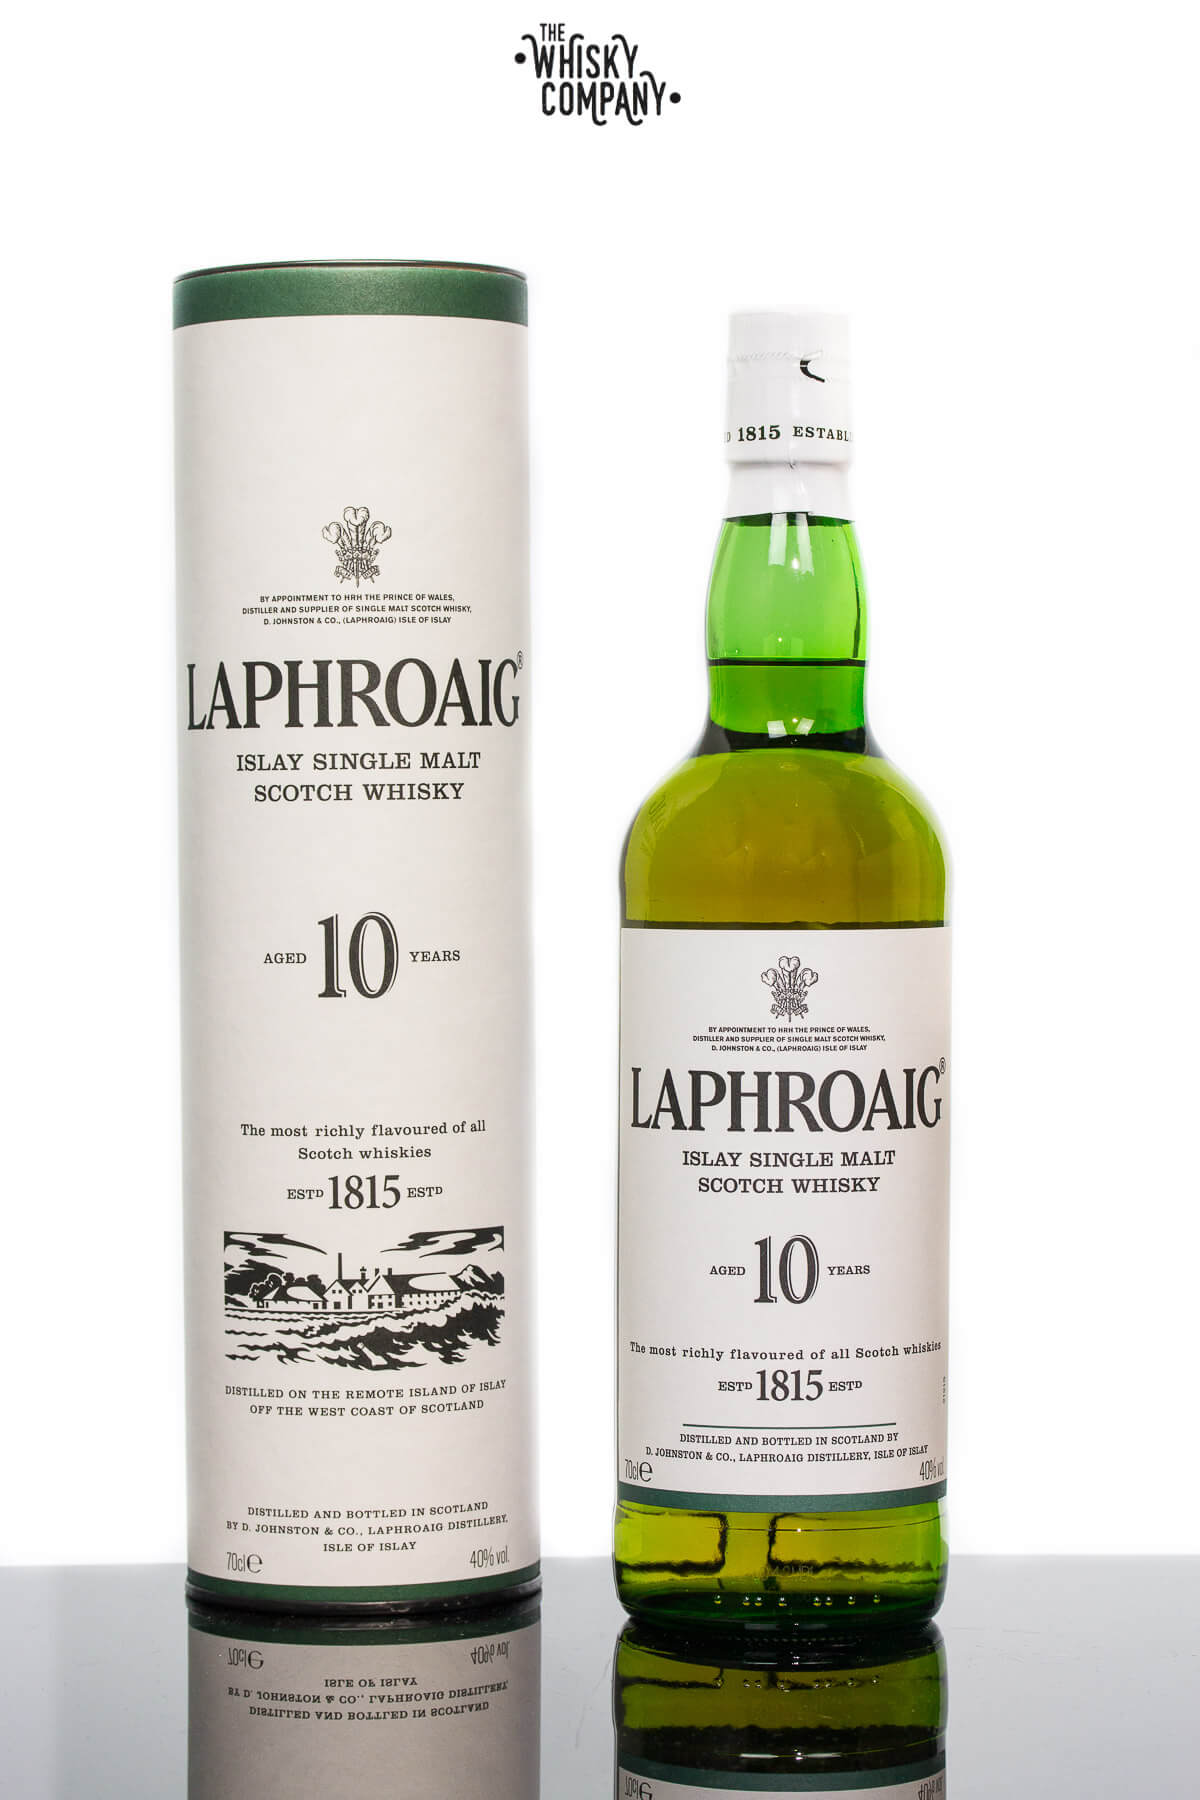 Laphroaig Aged 10 Years Islay Single Malt Scotch Whisky (700ml)